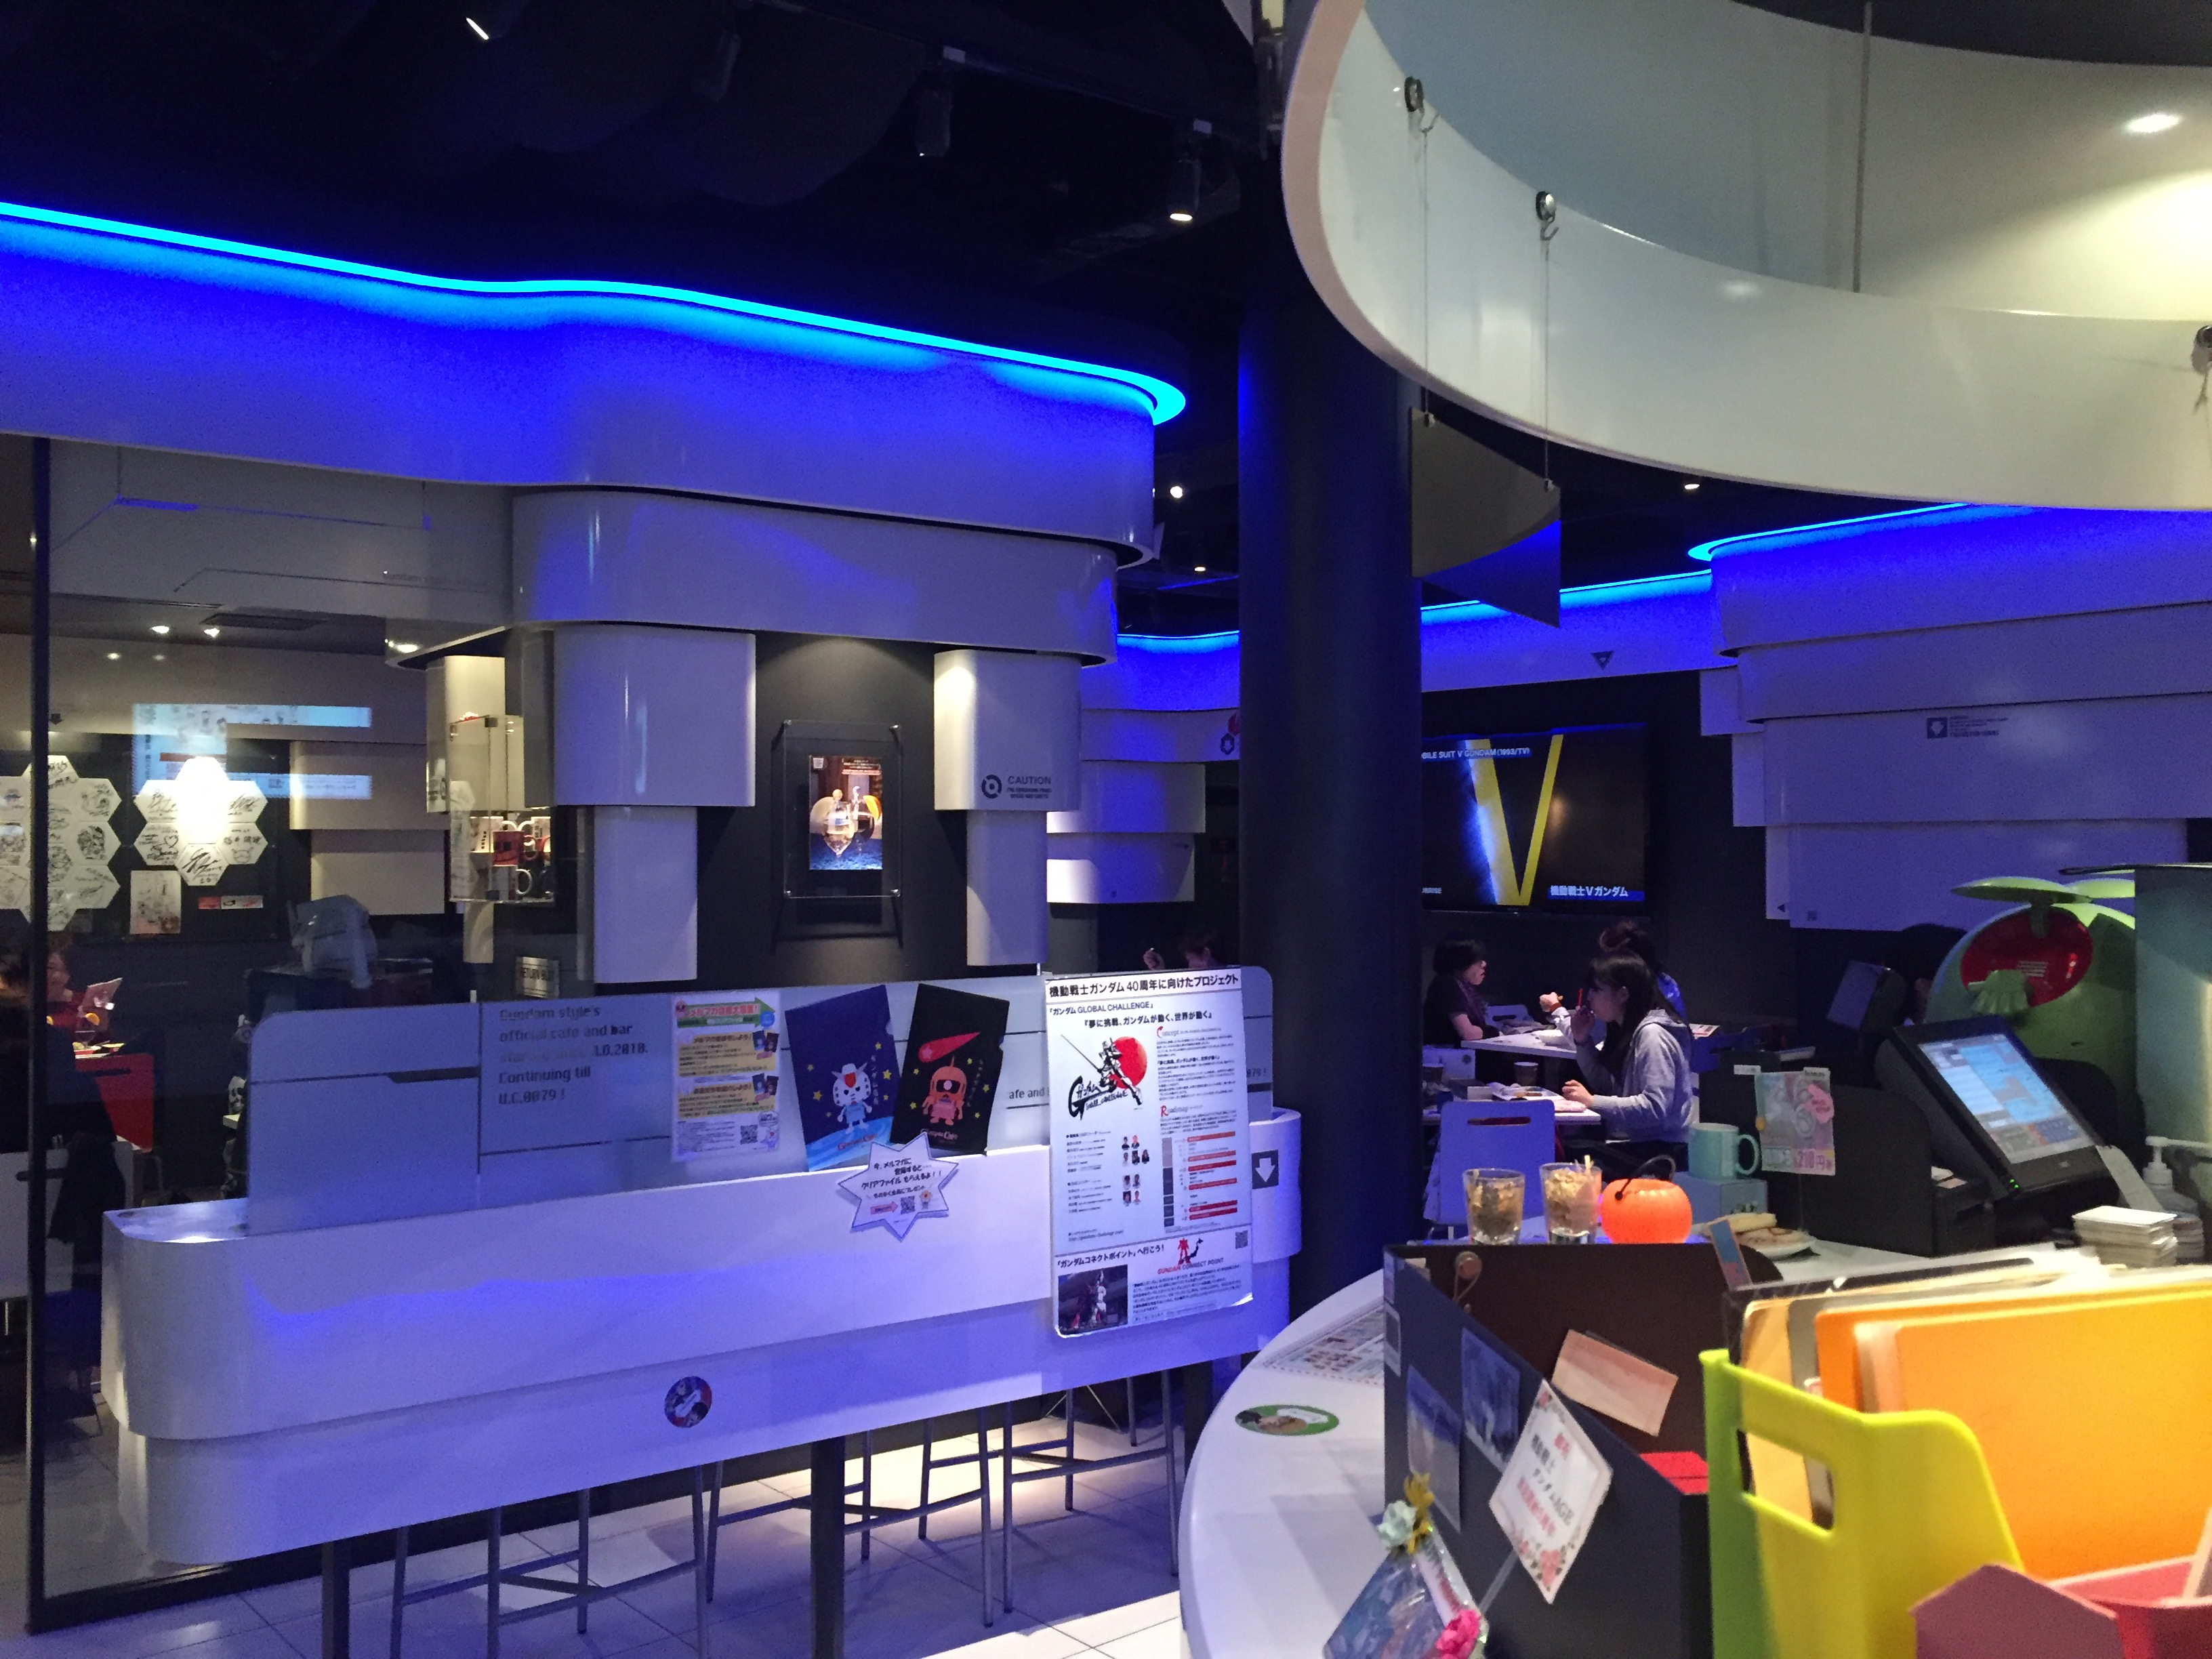 file:gundam cafe interior shot a - wikimedia commons